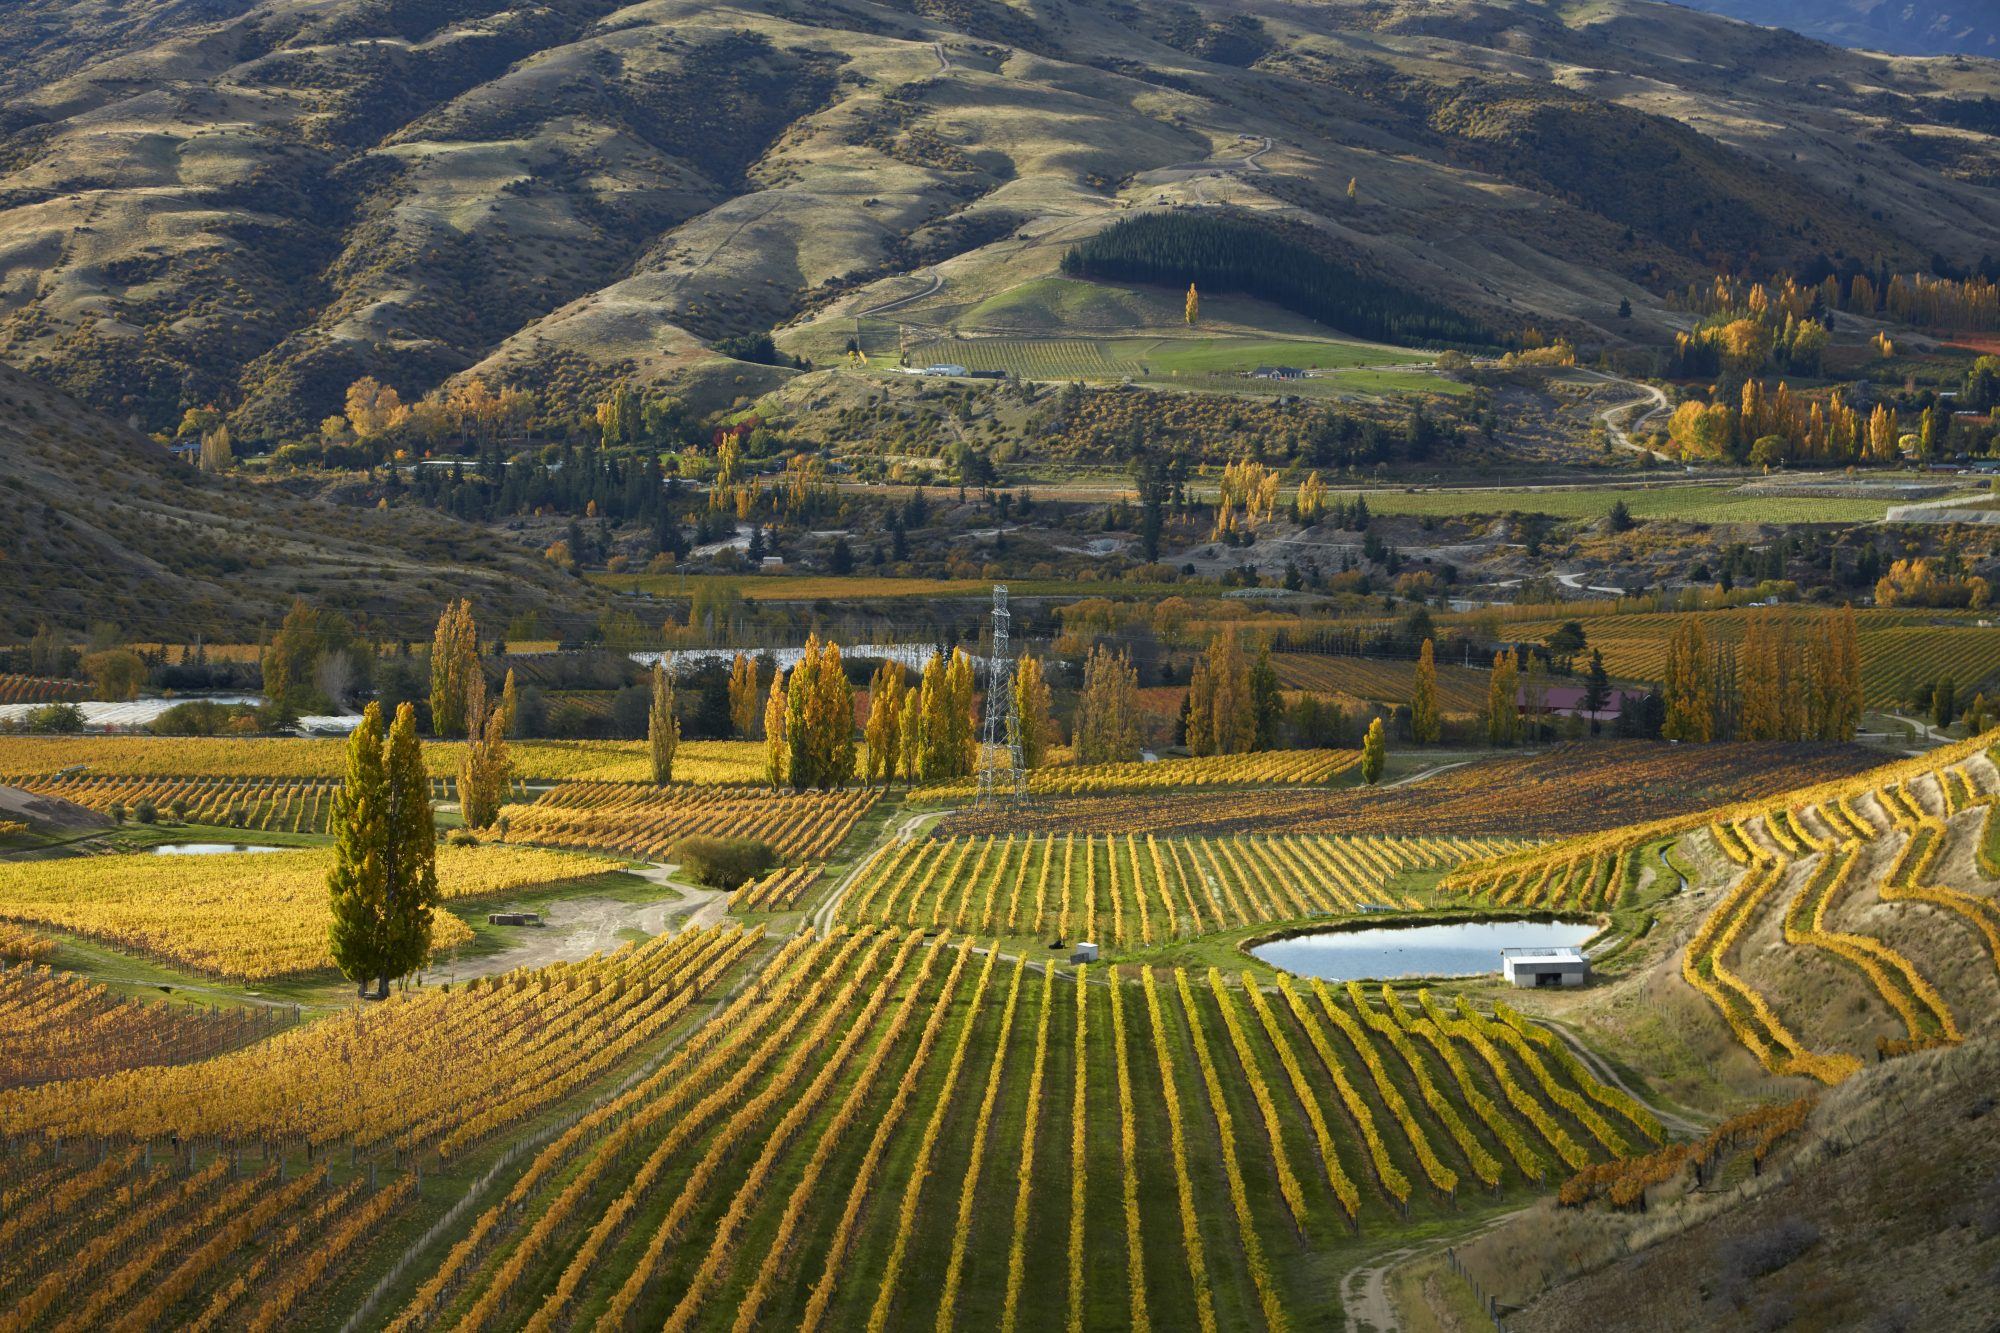 Autumn colors at Felton Road Vineyard near Cromwell, Bannockburn, Central Otago, South Island, New Zealand